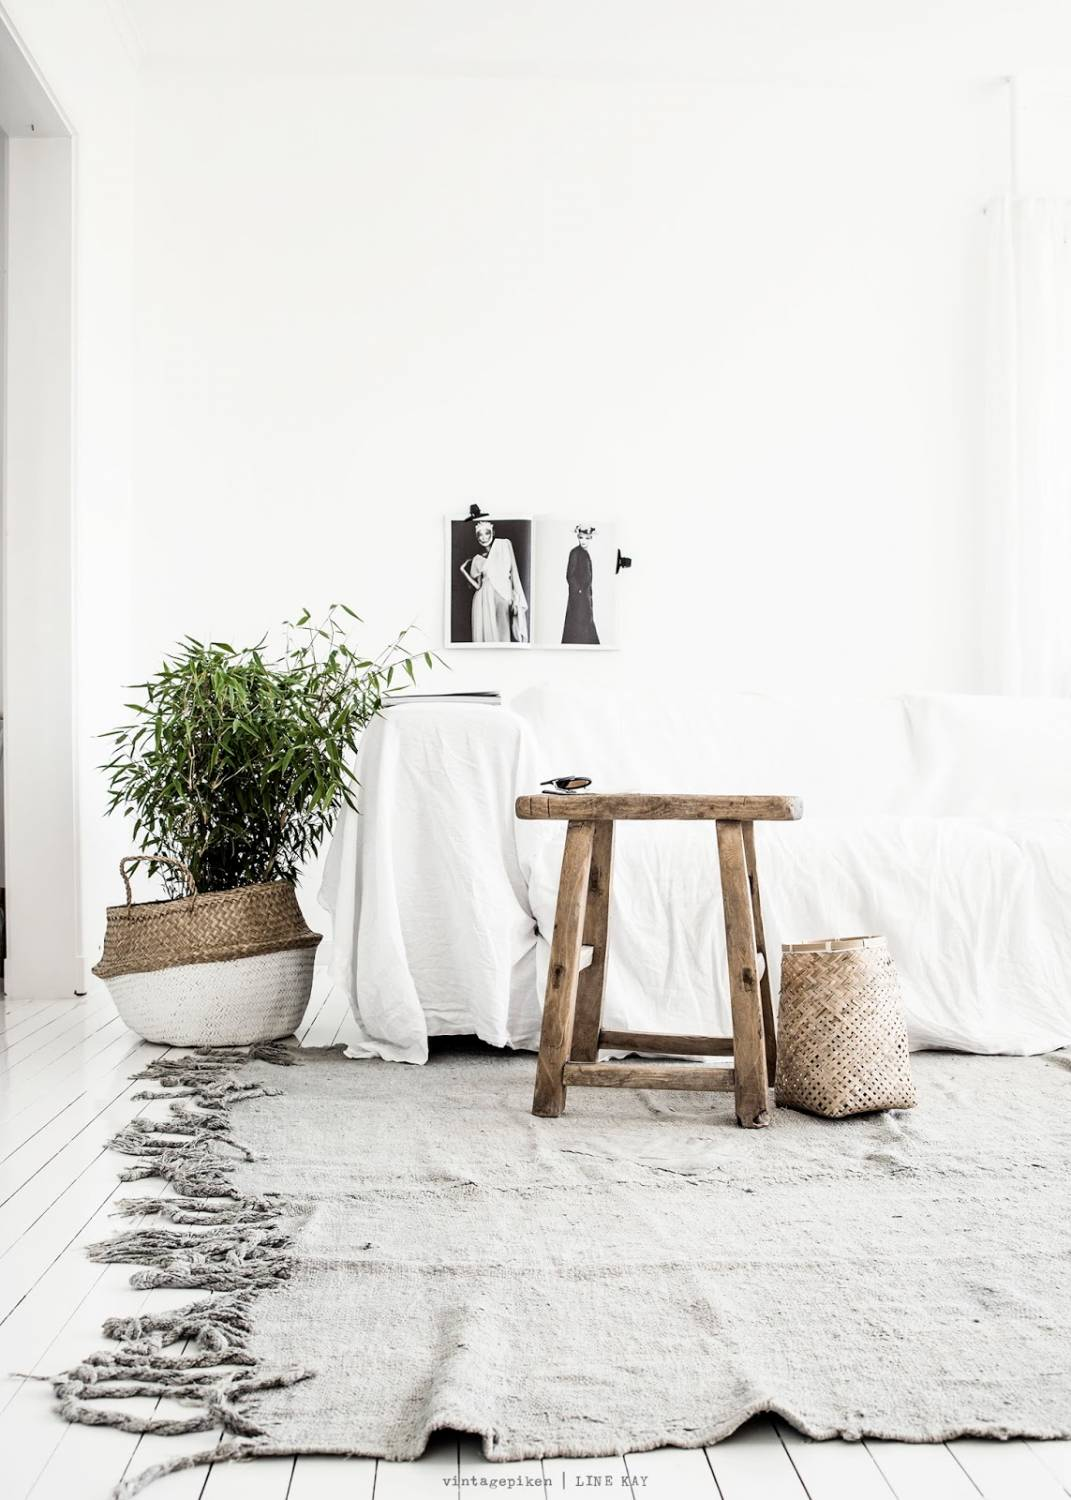 le bois d 39 orme bois ethnique dans une d co scandinave petite lily interiors. Black Bedroom Furniture Sets. Home Design Ideas